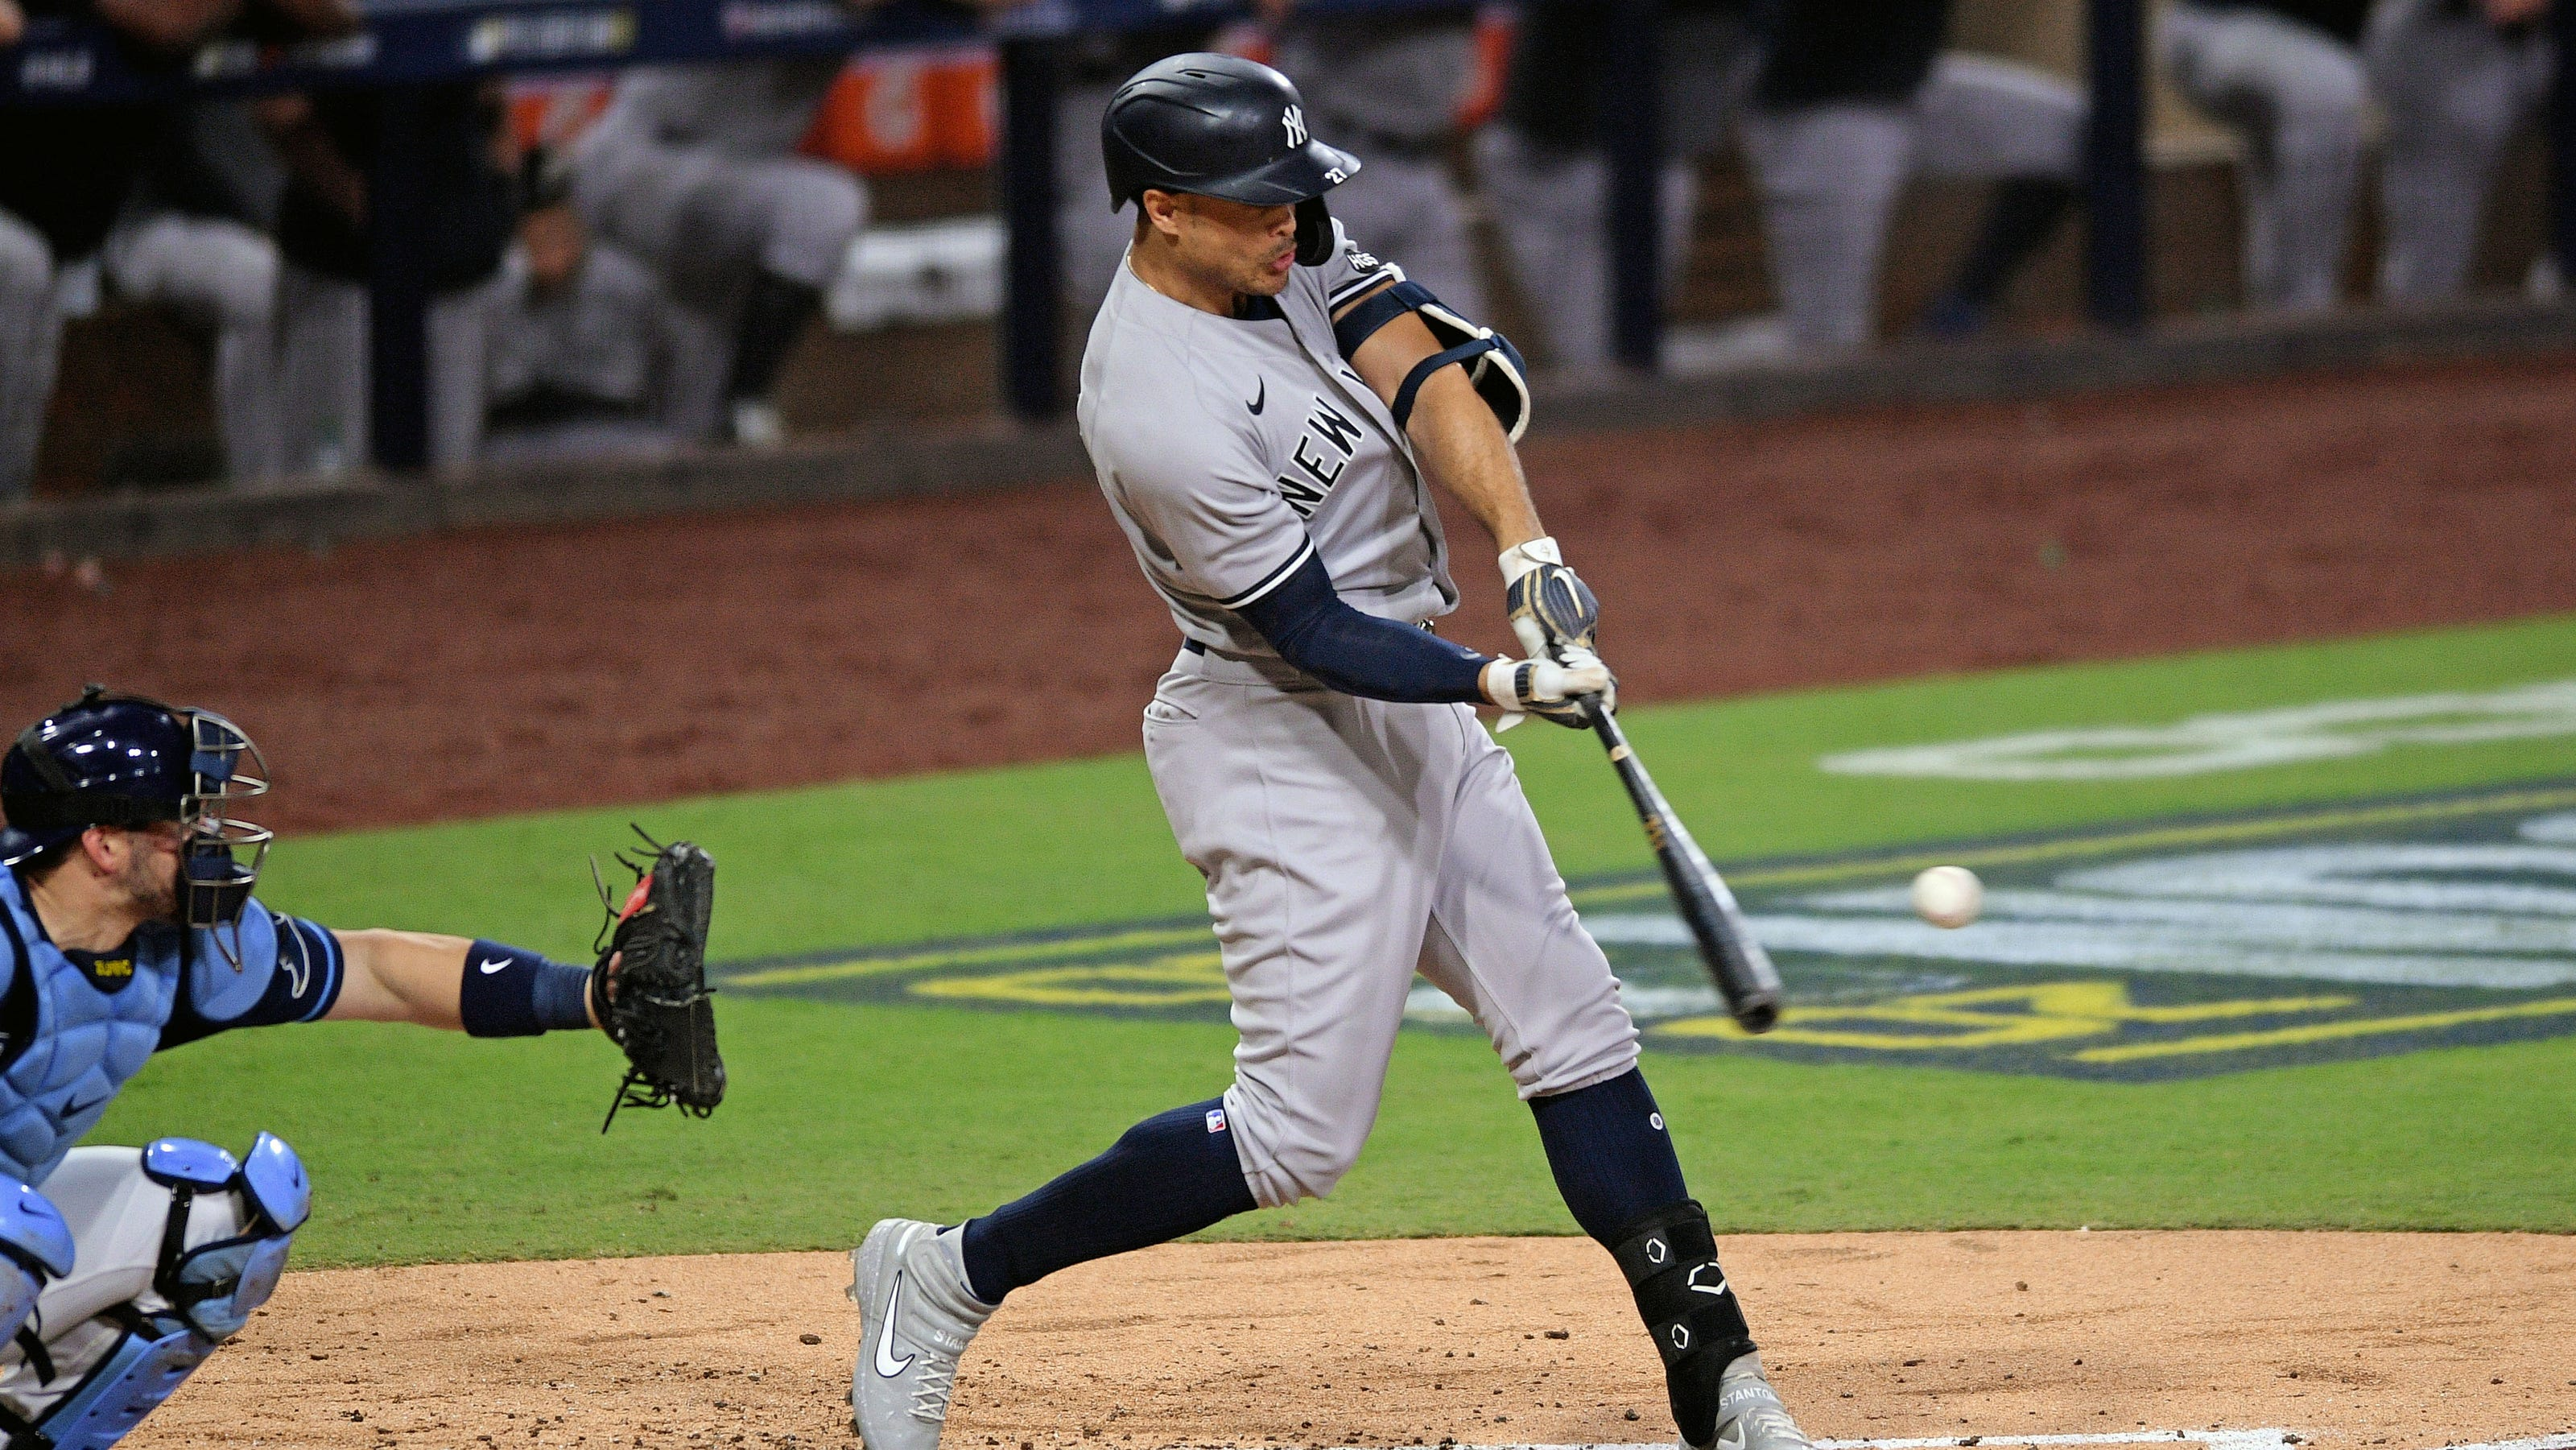 Yankees 2021 Season Preview - Giancarlo Stanton hitting a baseball in the 2020 ALDS